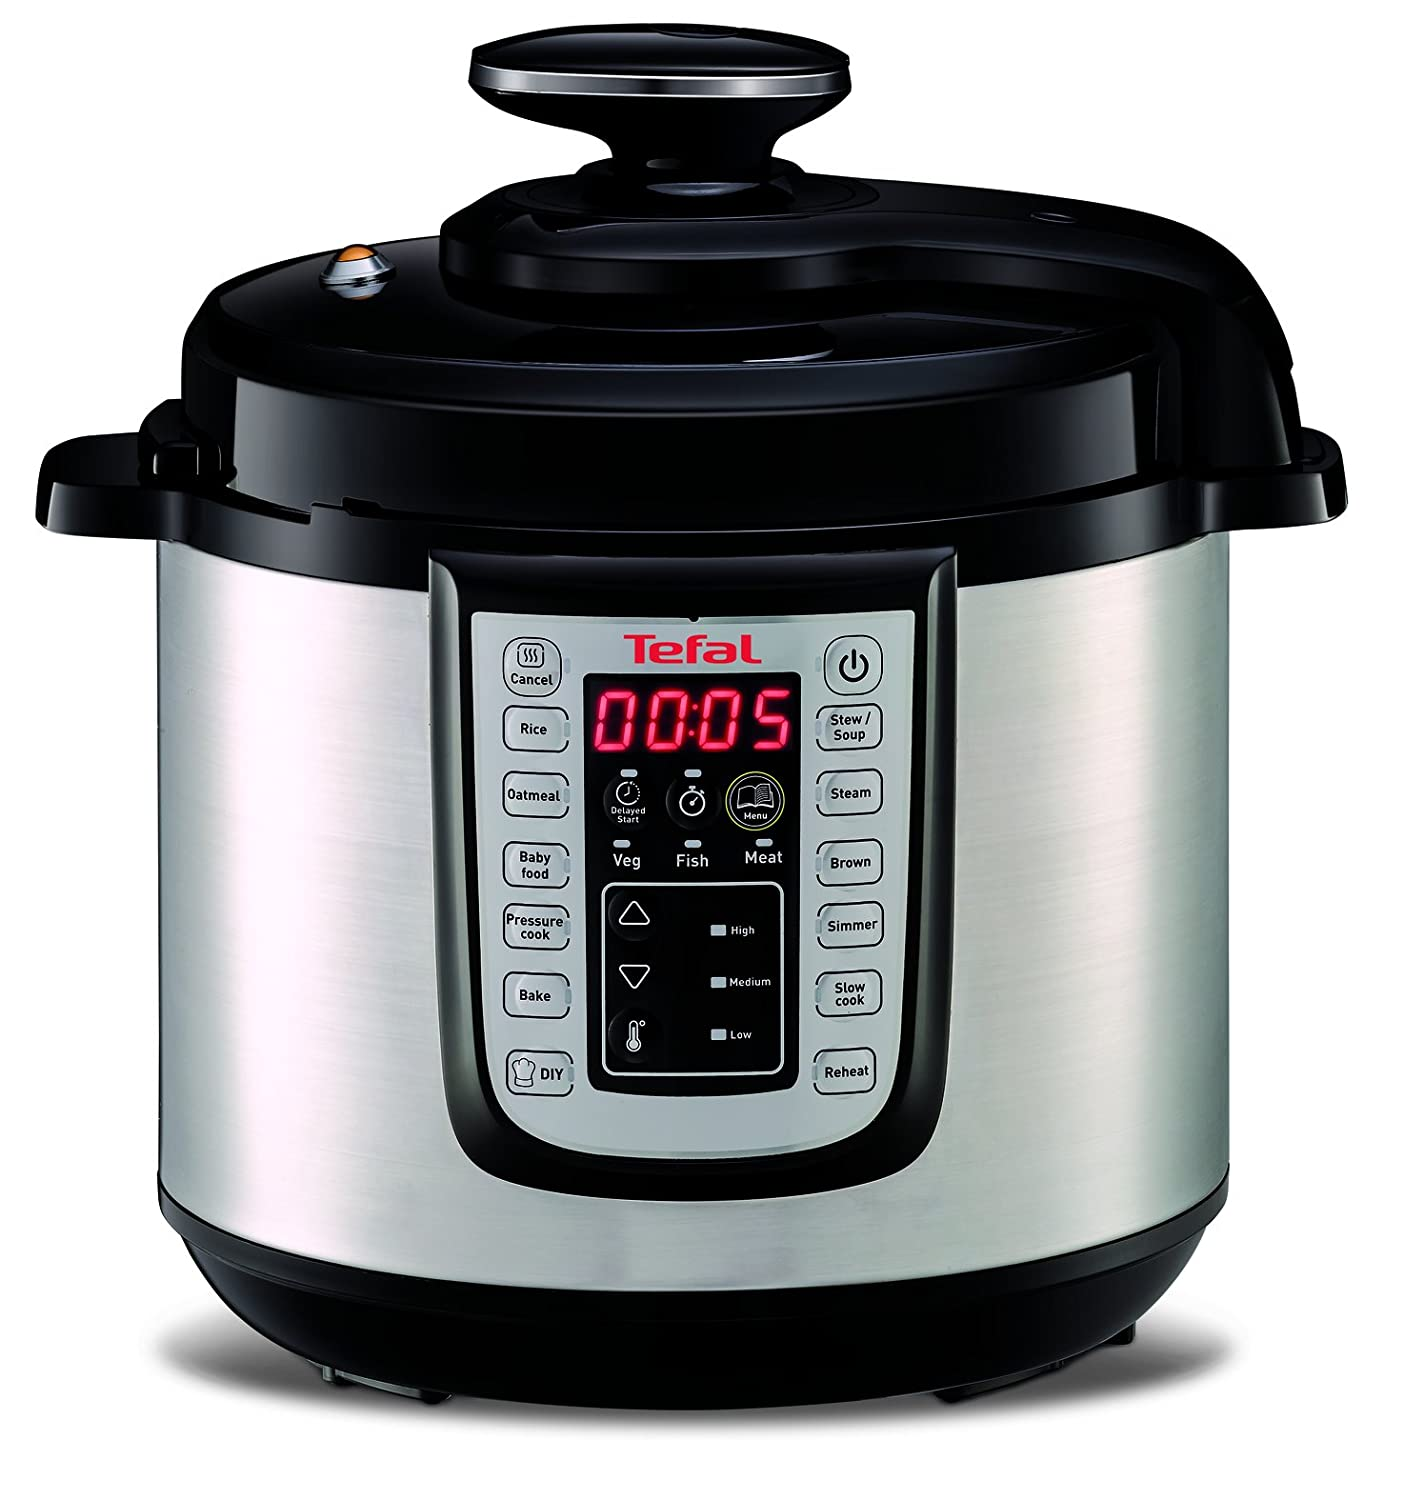 Tefal CY505E40 All-in-One CY505E40 Electric Pressure/Multi Cooker, Black/Stainless Steel